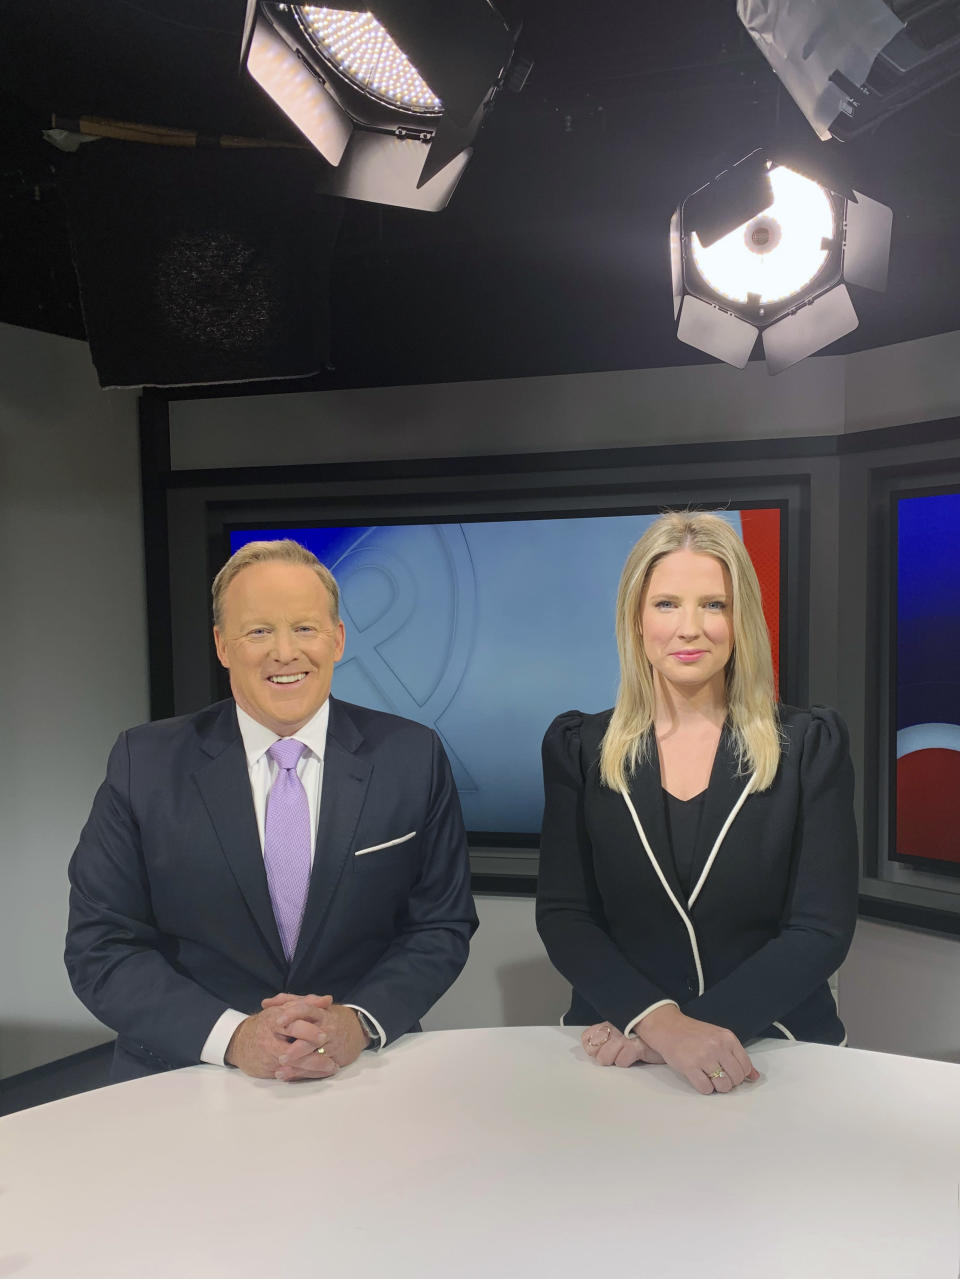 """In this image released by Newsmax, co-hosts Sean Spicer and Lyndsay Keith pose for a photo on the set of """"Spicer & Co."""" The network's rise in popularity has been astonishingly swift and could indicate the first serious threat to Fox News Channel's iron grip on conservative viewers in two decades. (Newsmax via AP)"""